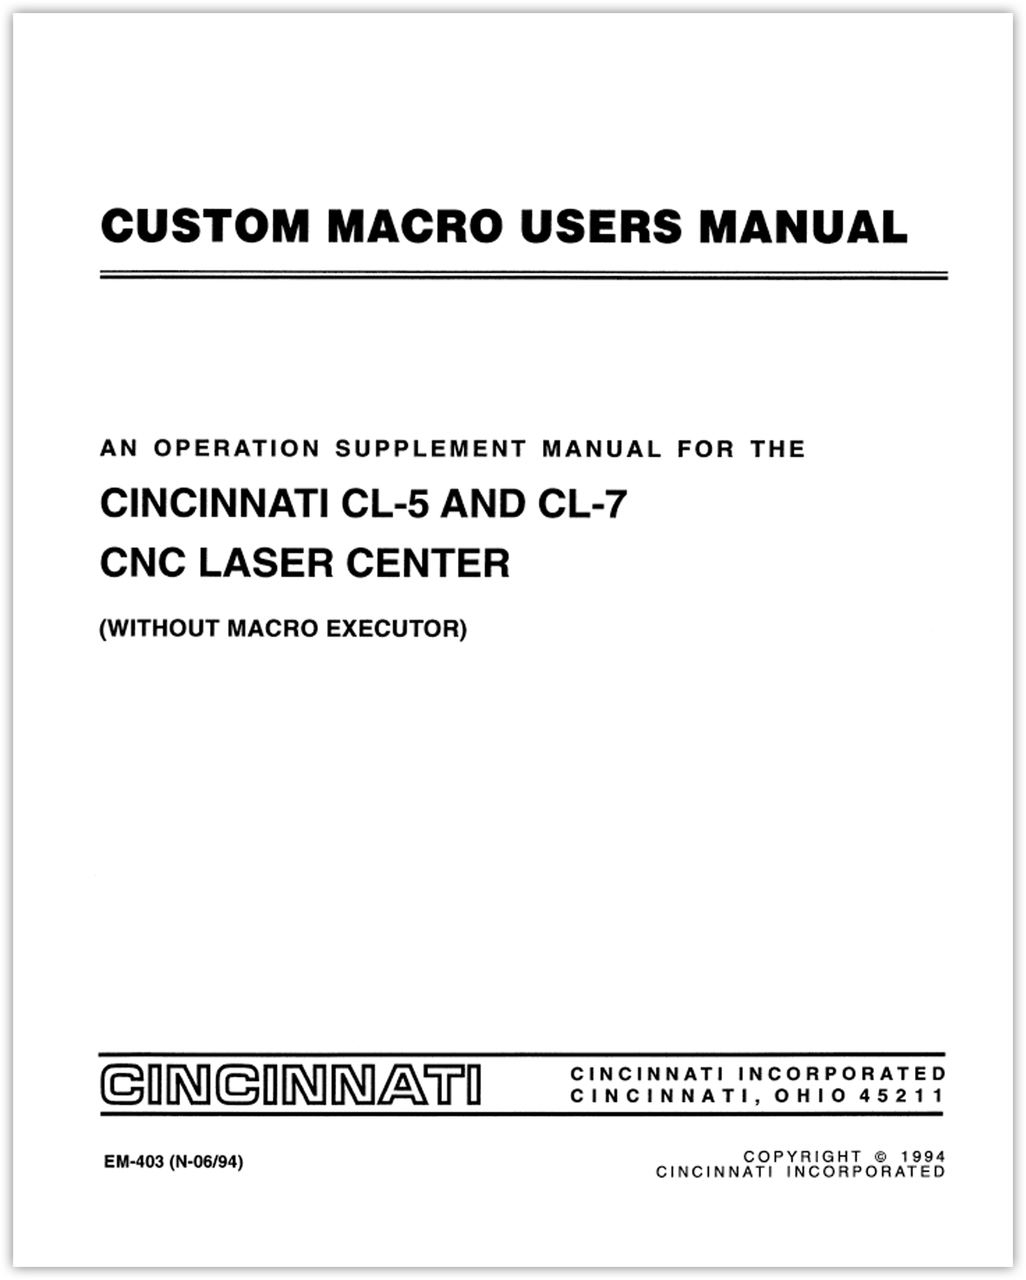 EM-403 (N-06-94) Custom Macro Users Manual for CL-5 and CL-7 CNC Laser Centers (Without Macro Executor) Operation Supplement Manual